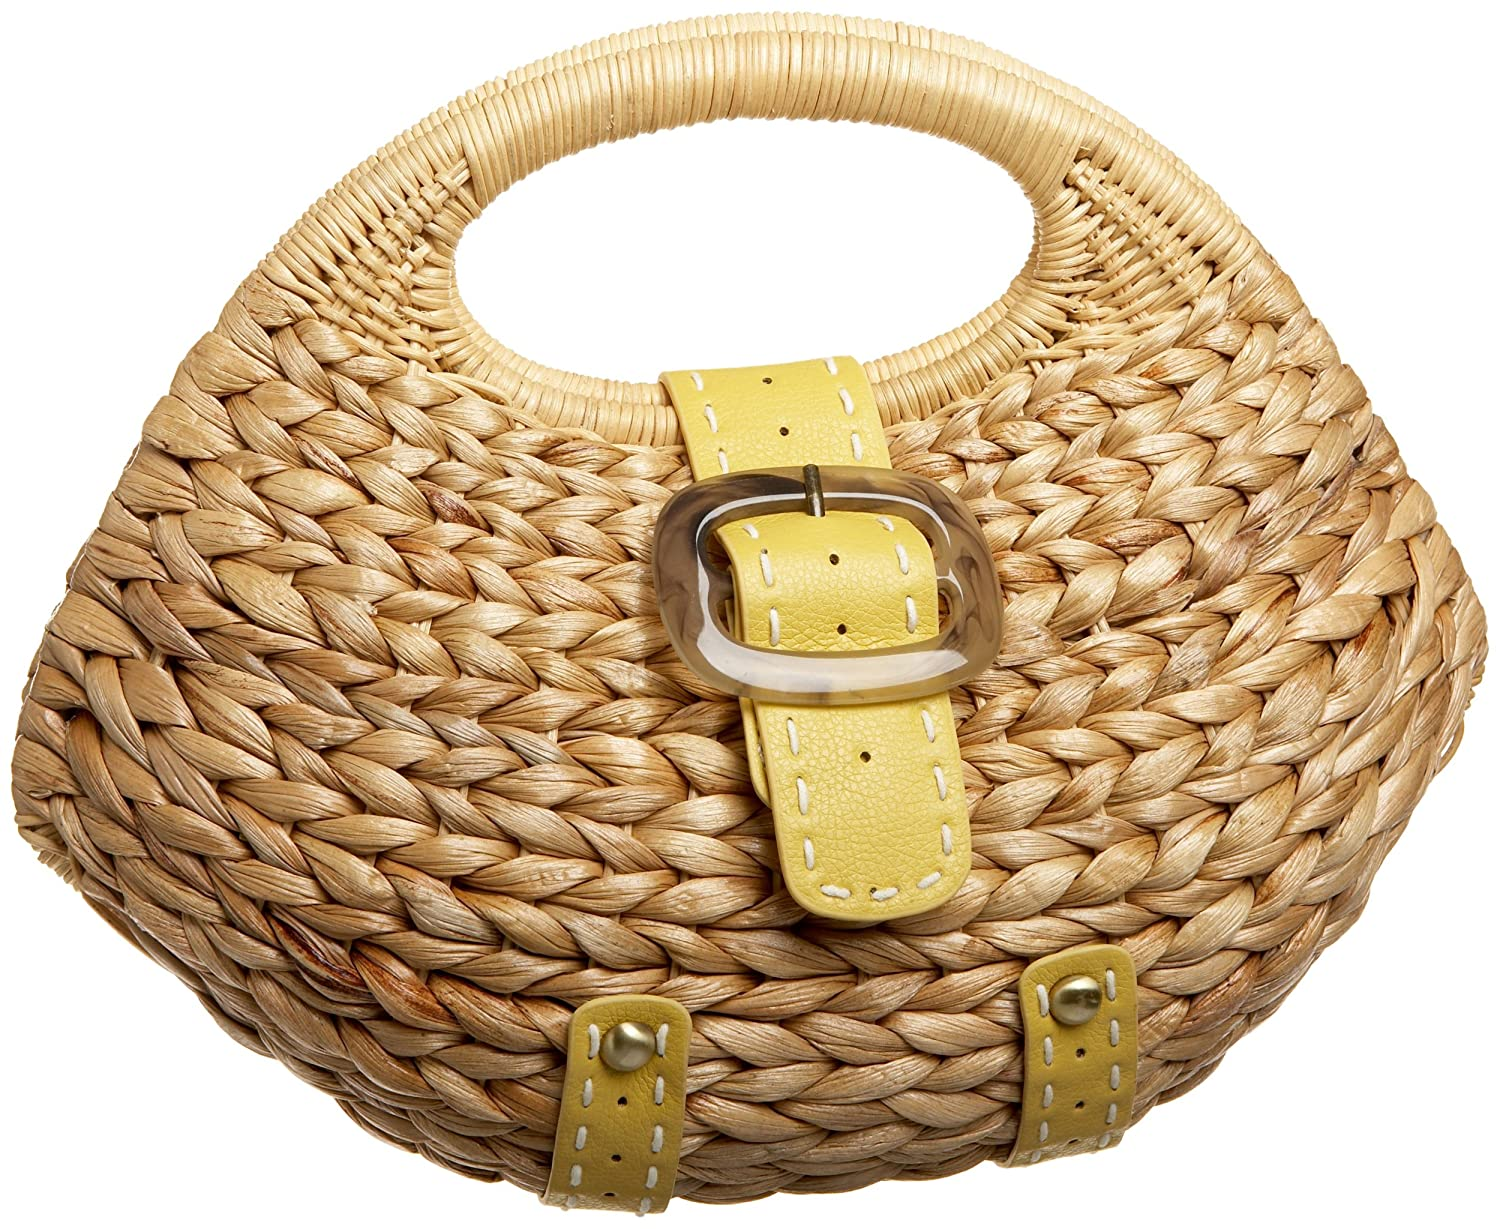 SR SQUARED by Sondra Roberts Straw Satchel - Free Overnight Shipping & Return Shipping: Endless.com :  frame lined yellow bag